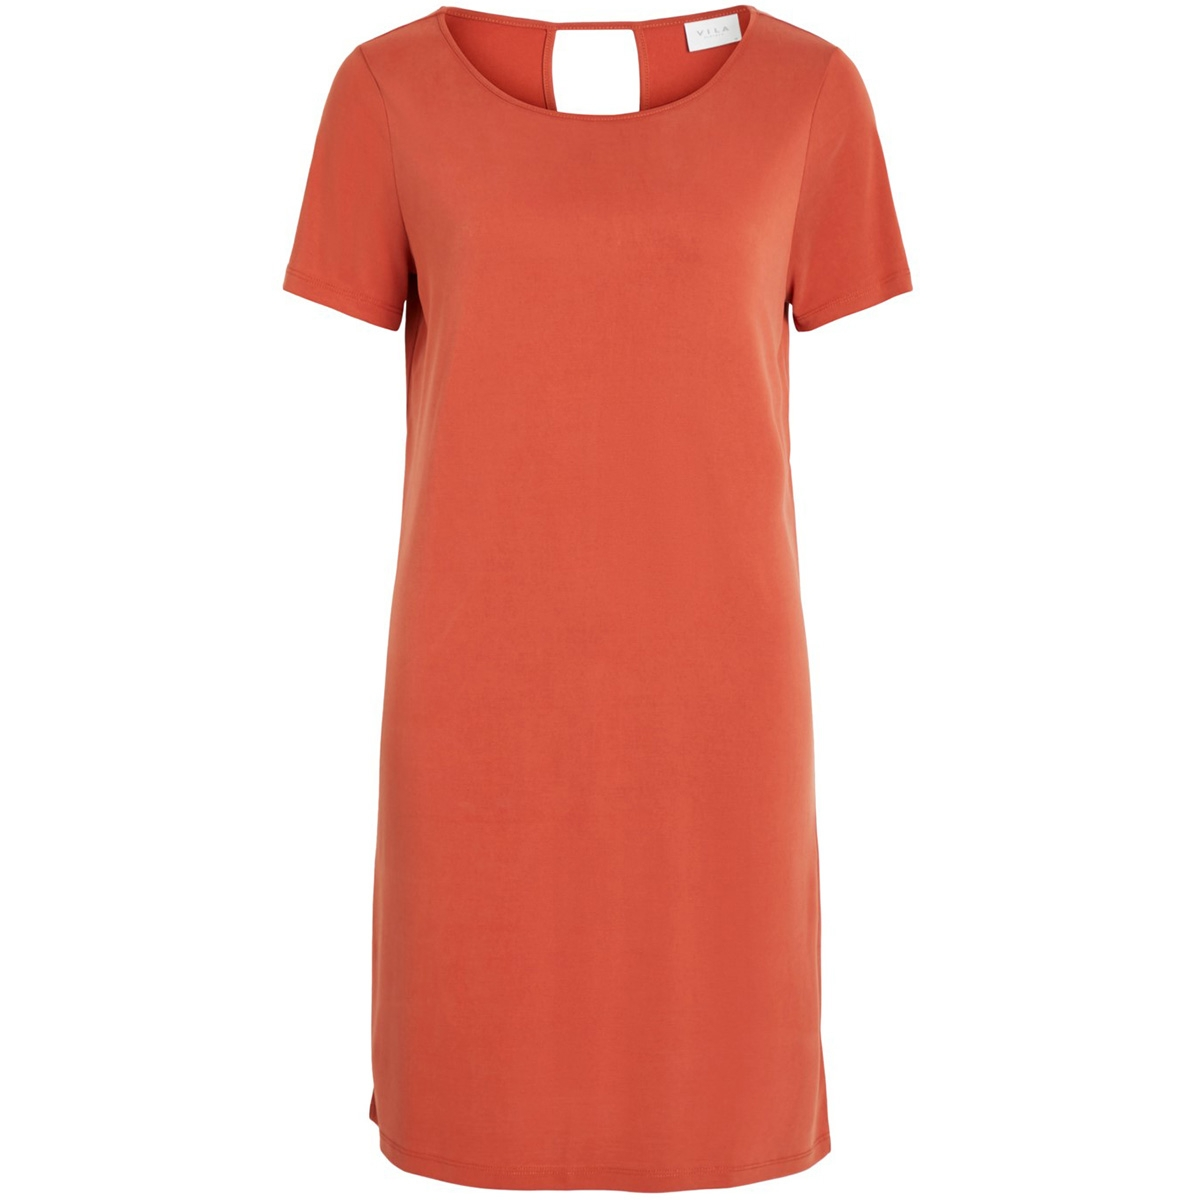 vitriny s/s dress-fav nx 14053486 vila jurk ketchup